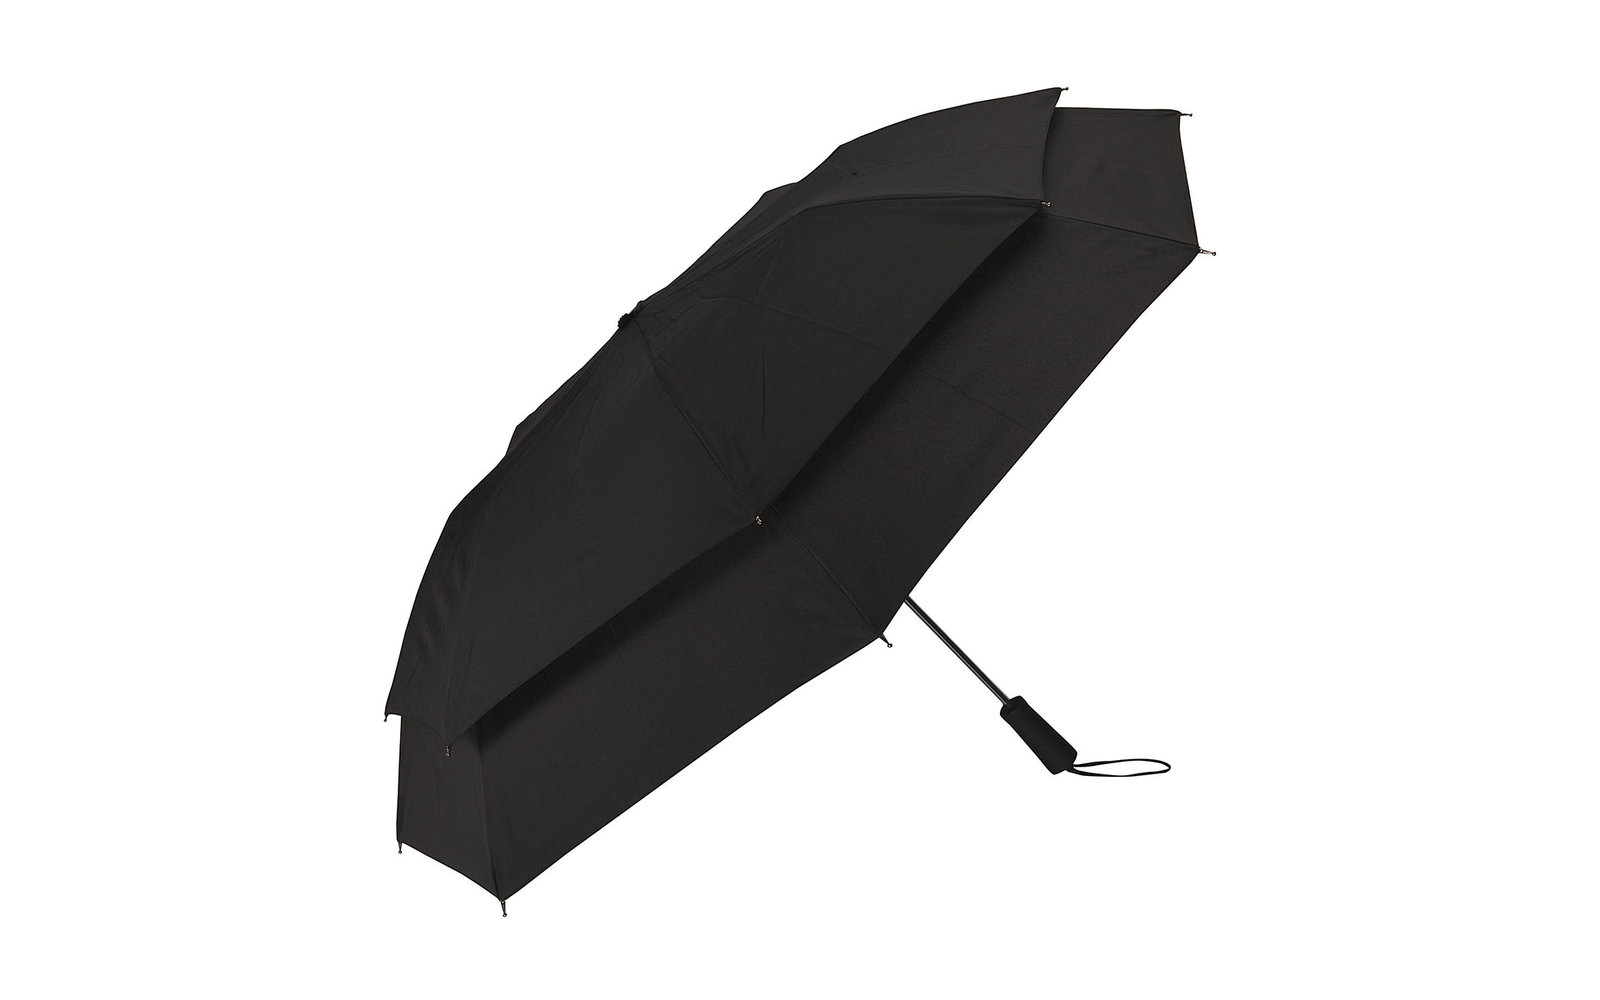 62092302deec The Best Travel Umbrellas That Fit in Your Carry-on Bag | Travel + ...